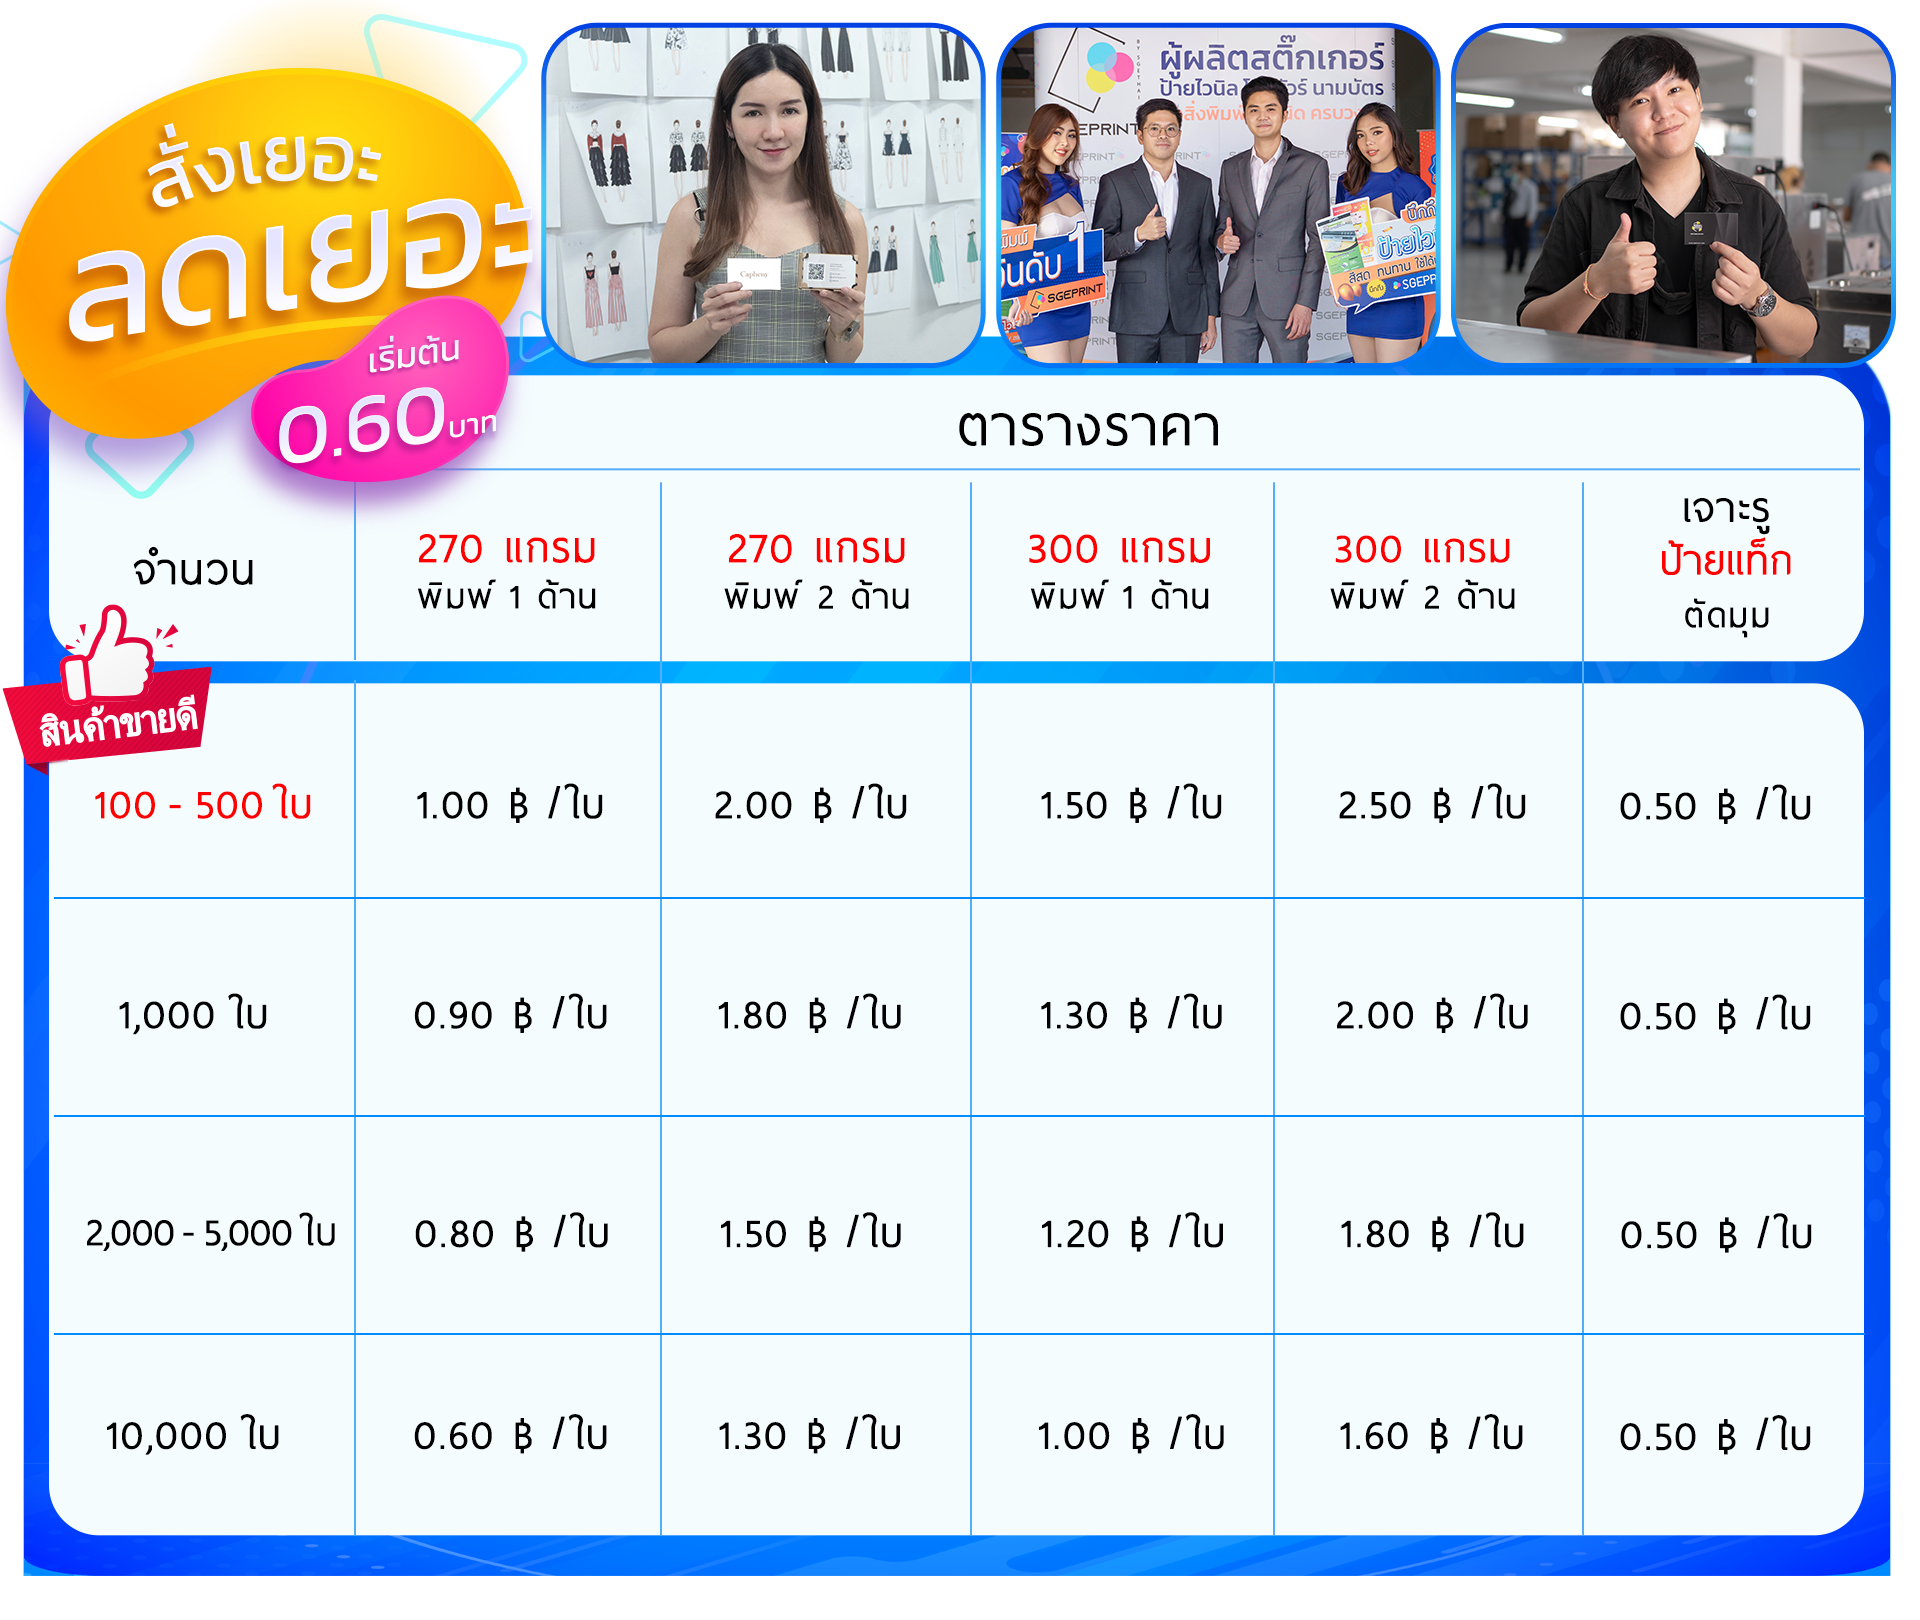 Prices-table-new-ตารางทำนามบัตรsgeprint4